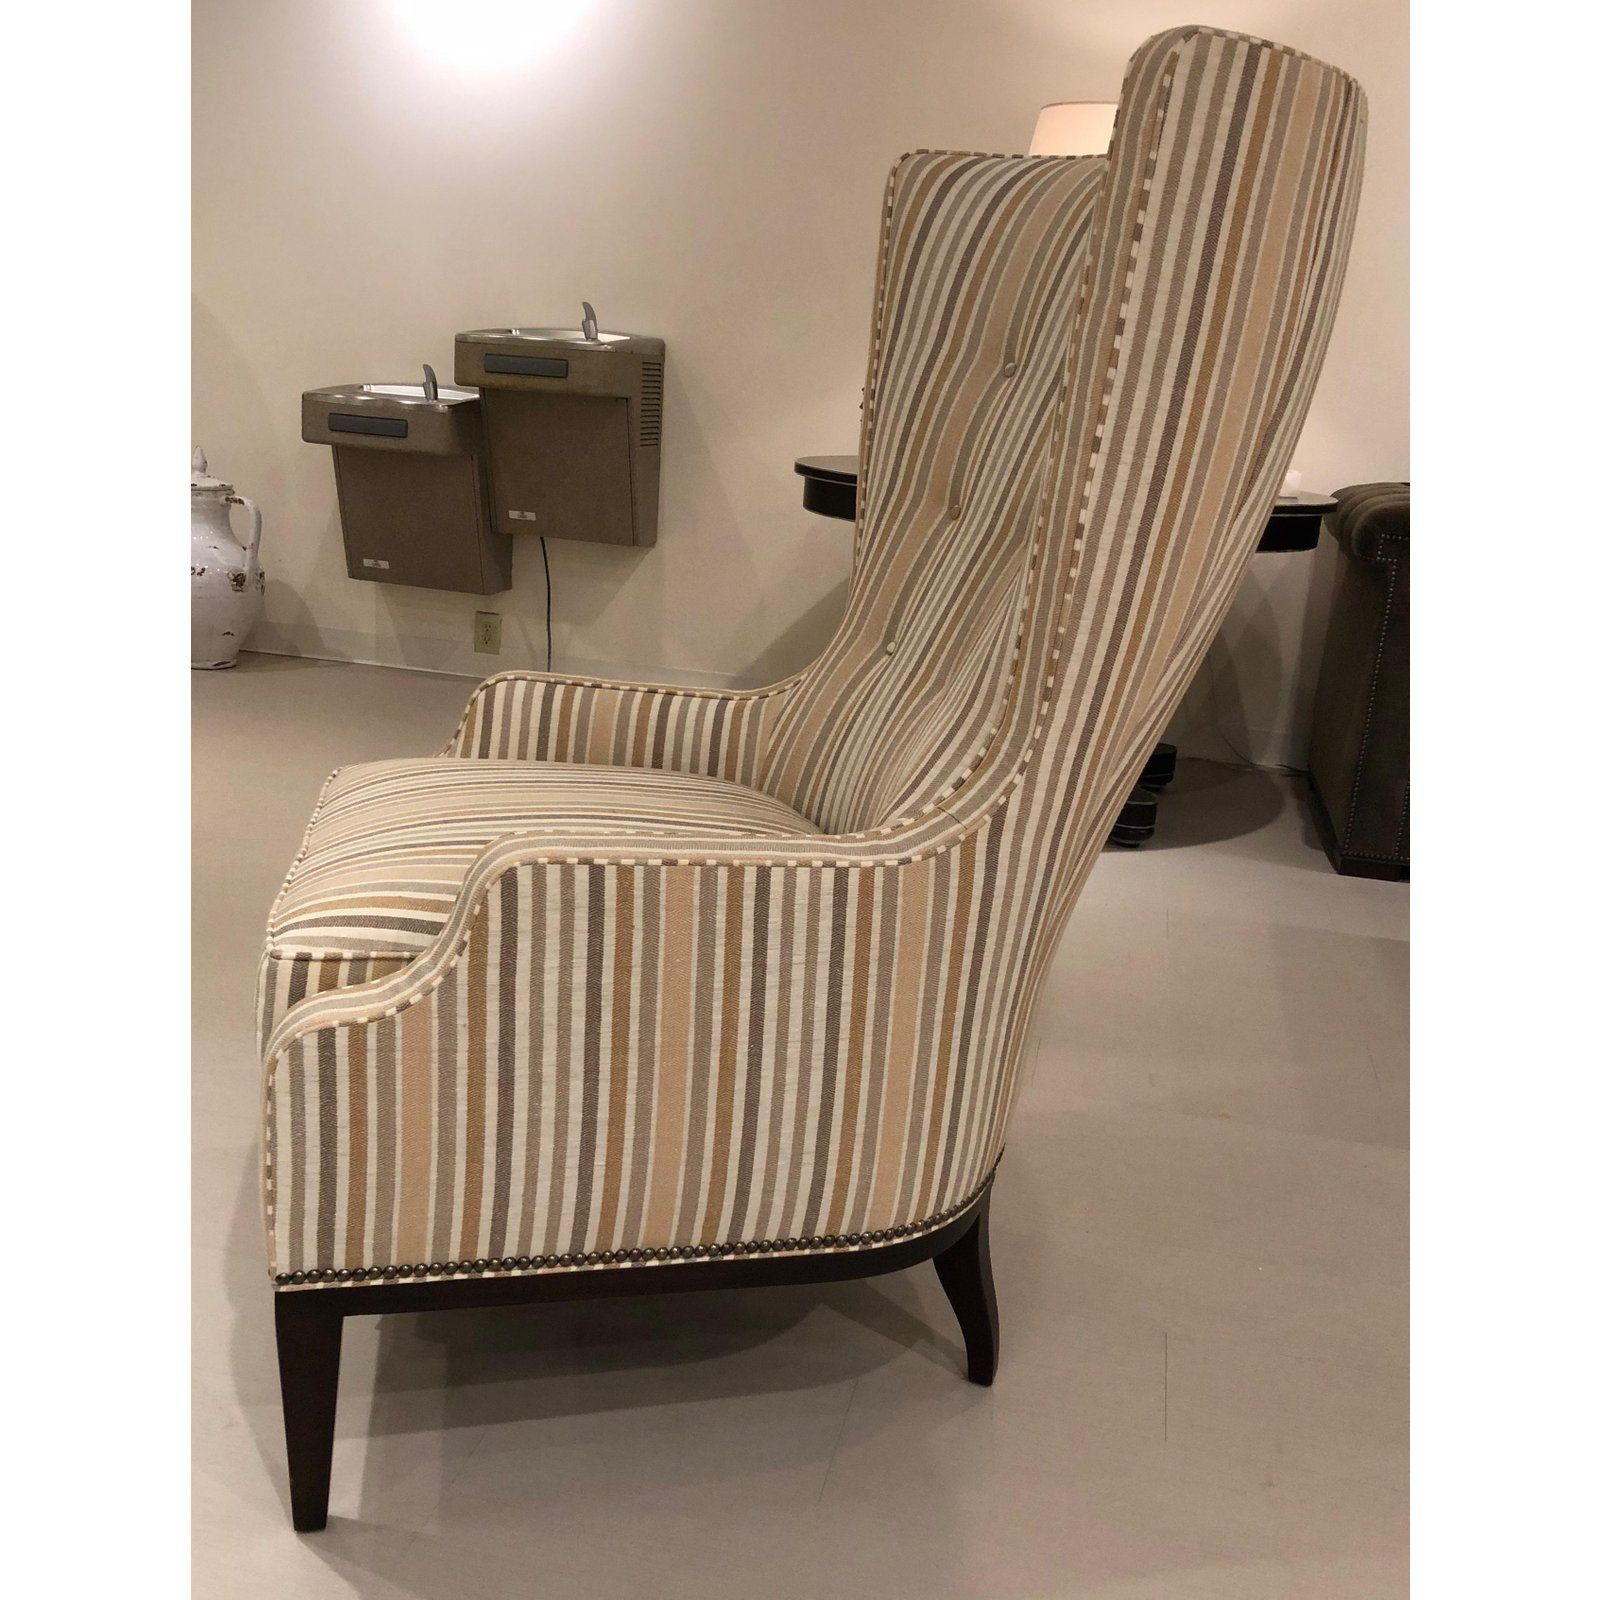 Hickory Chair Elliott Wing Chair Hickory chair, Wing